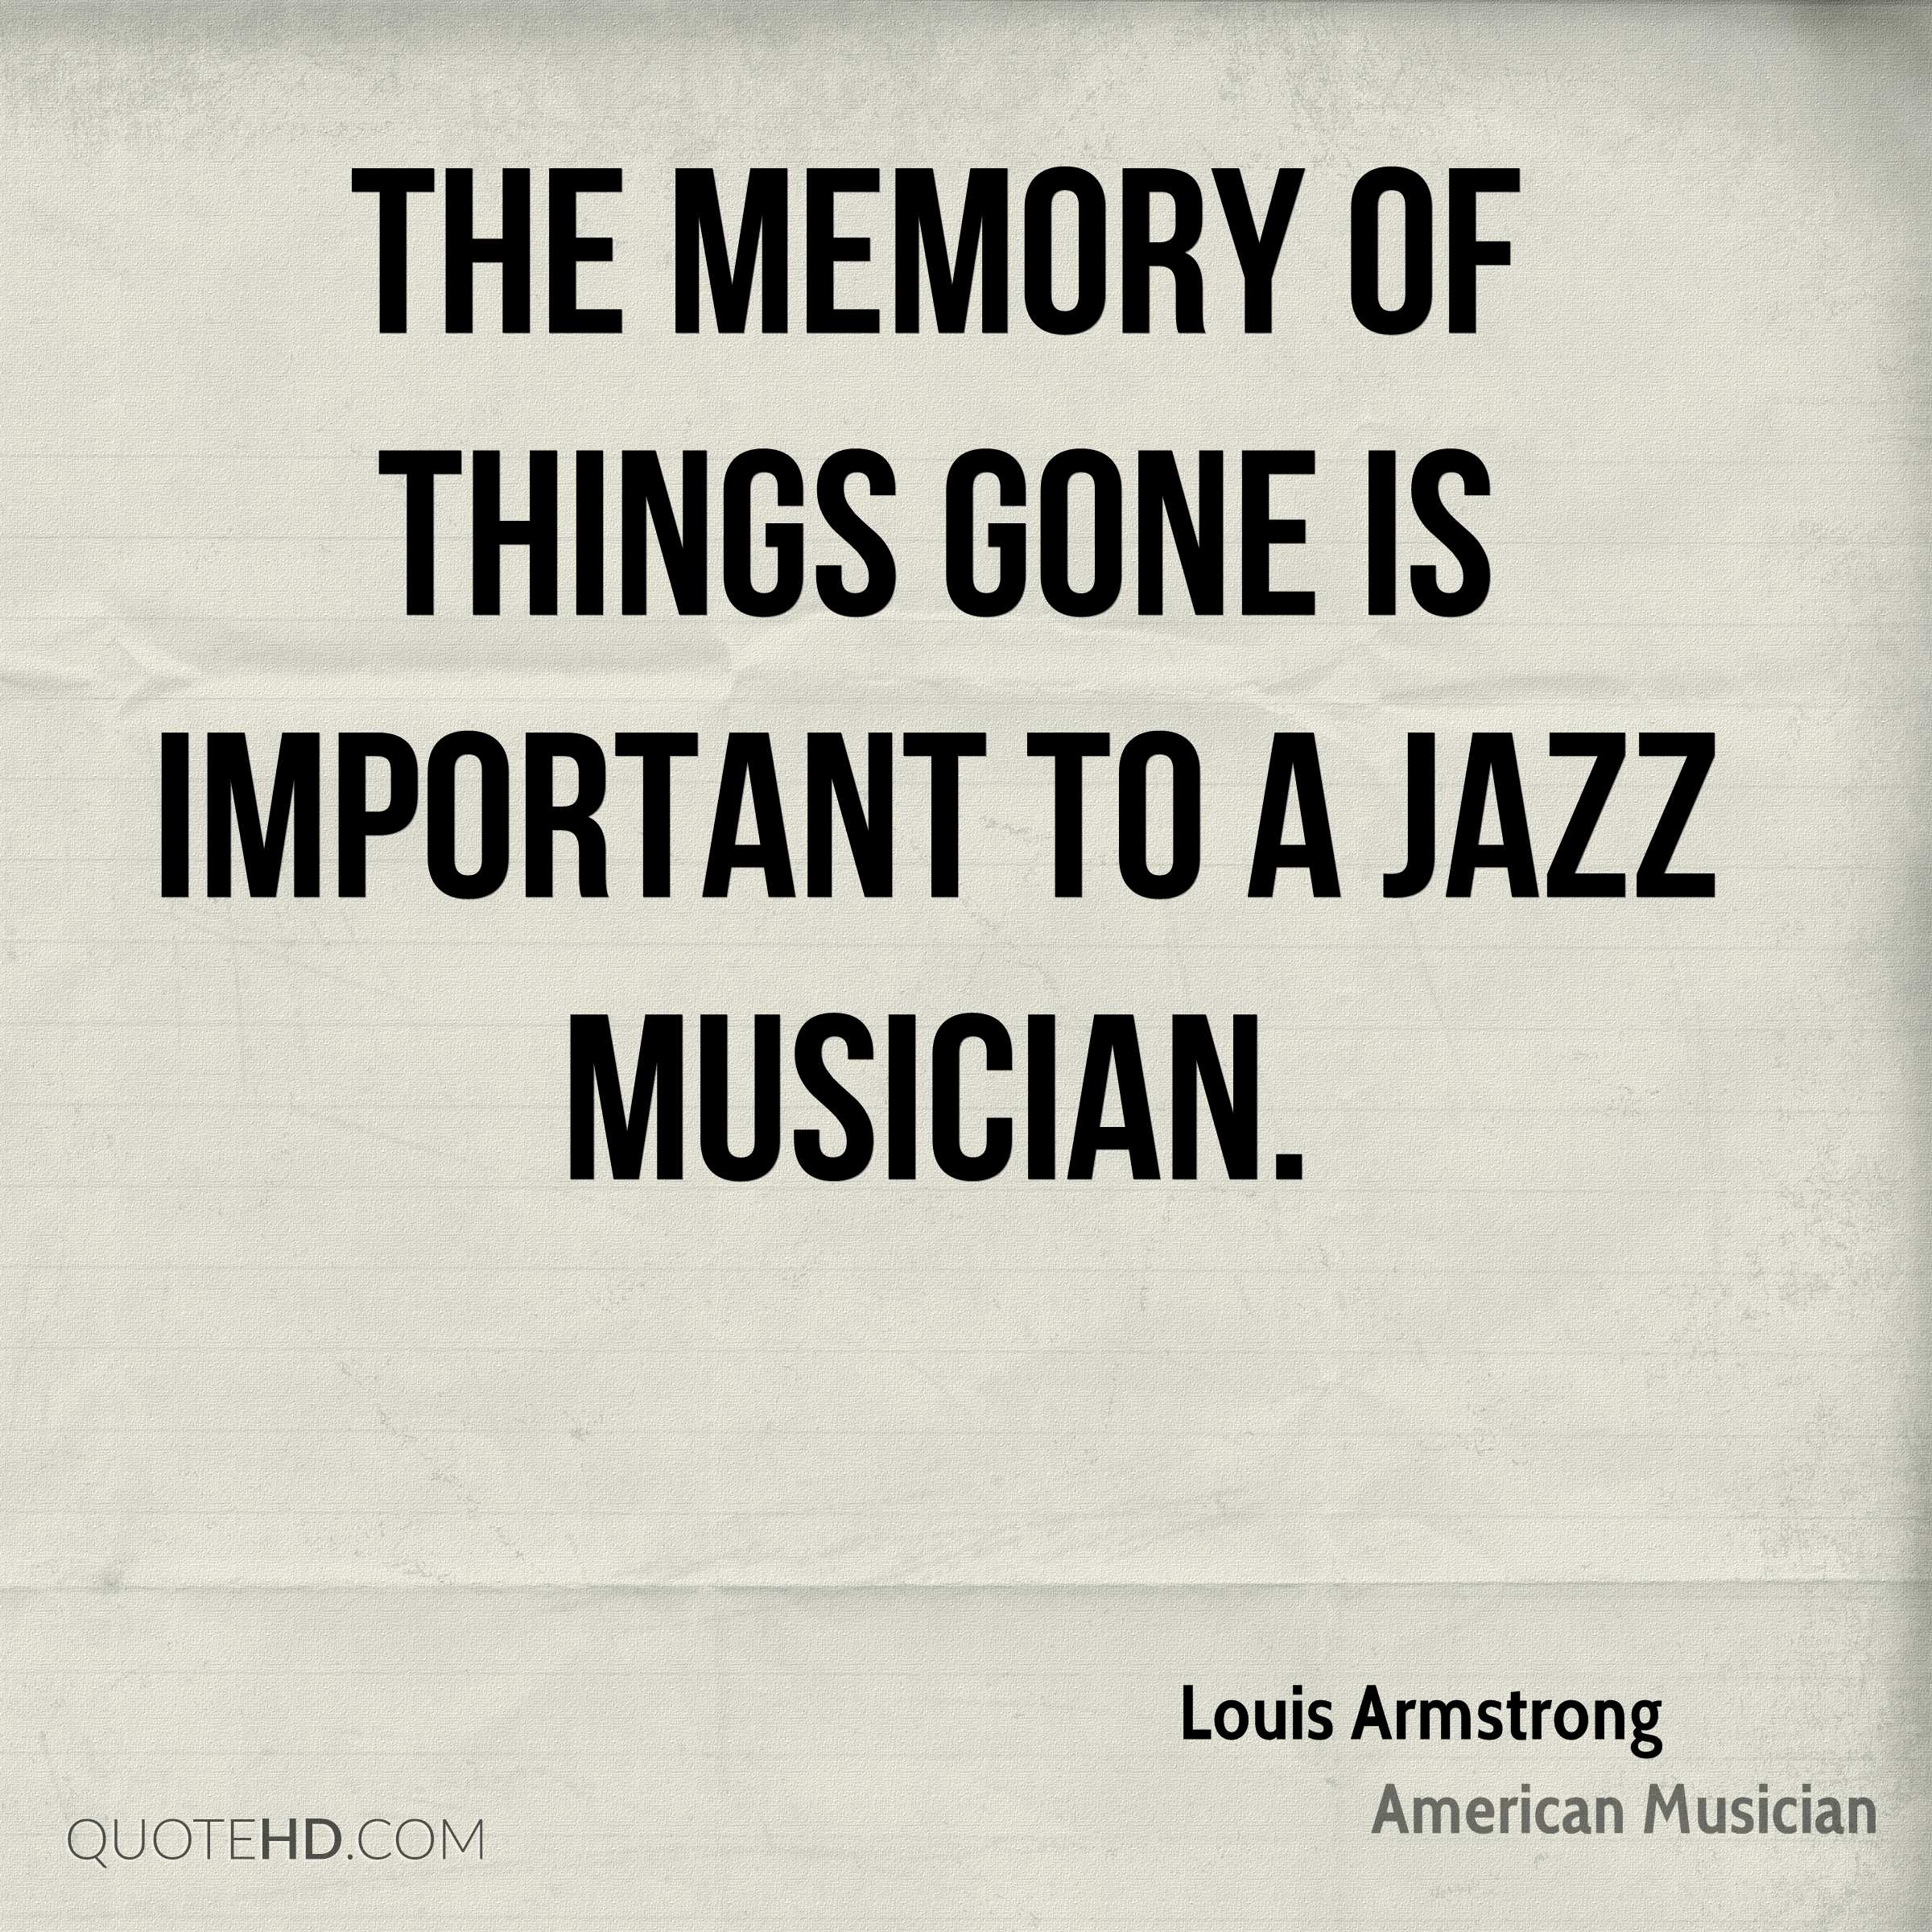 The memory of things gone is important to a jazz musician.